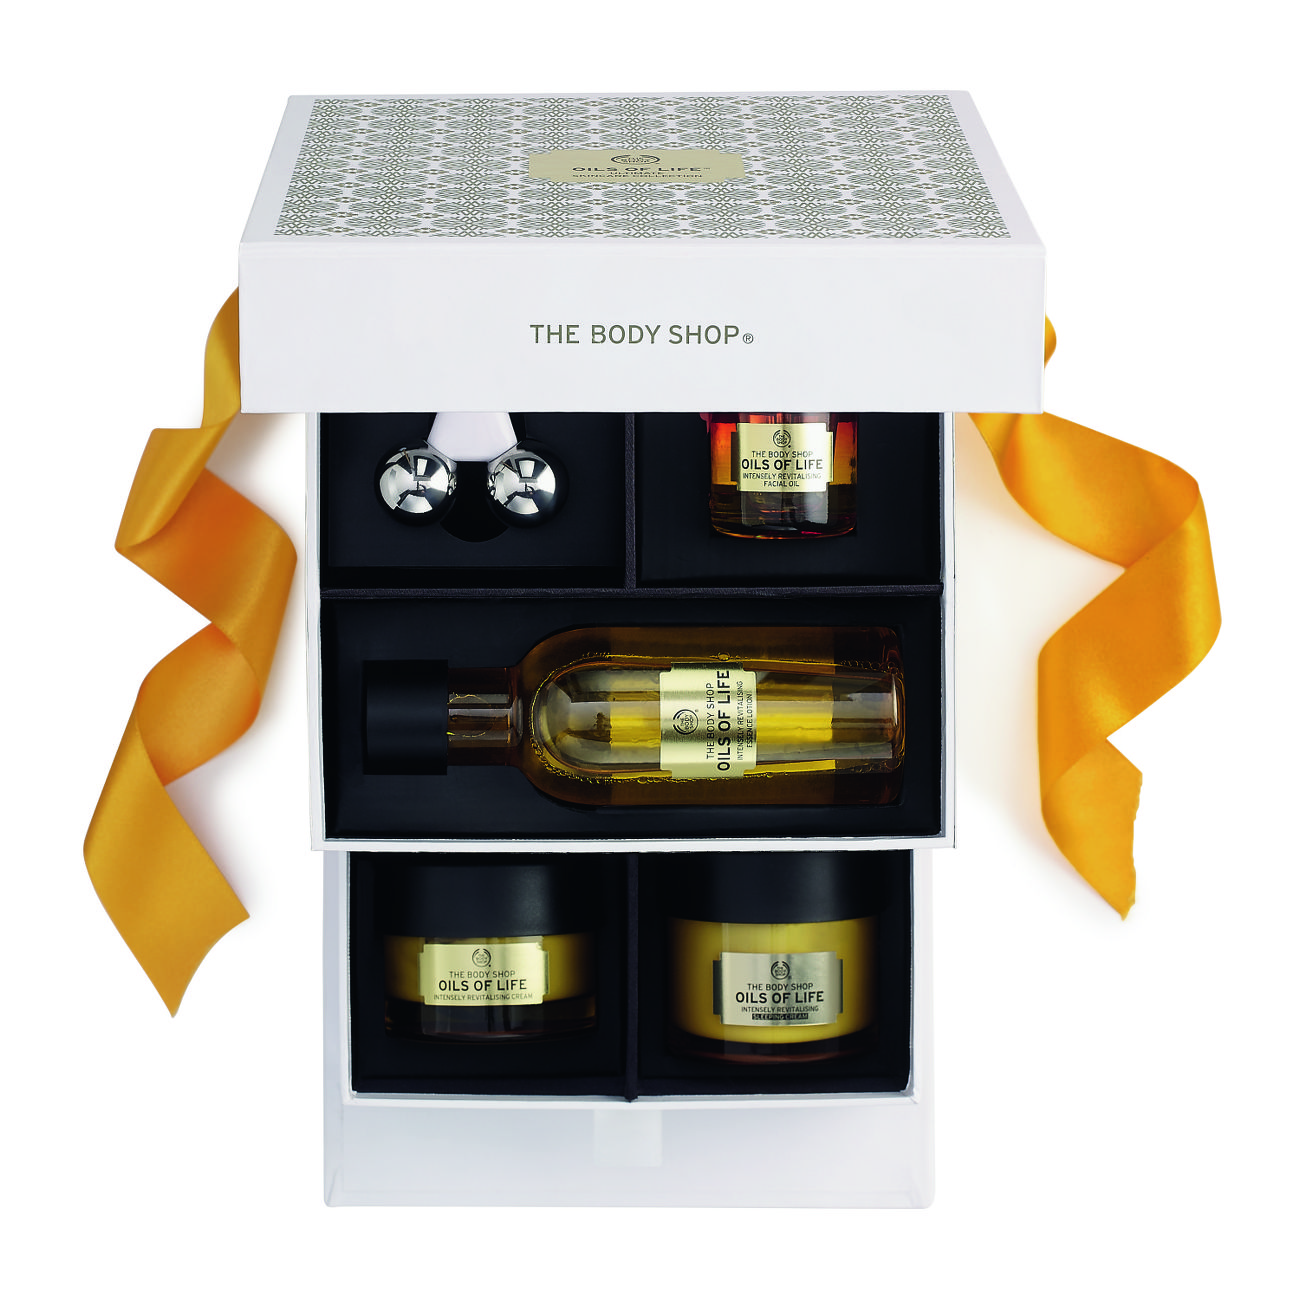 the-body-shop-coffret-oils-of-life